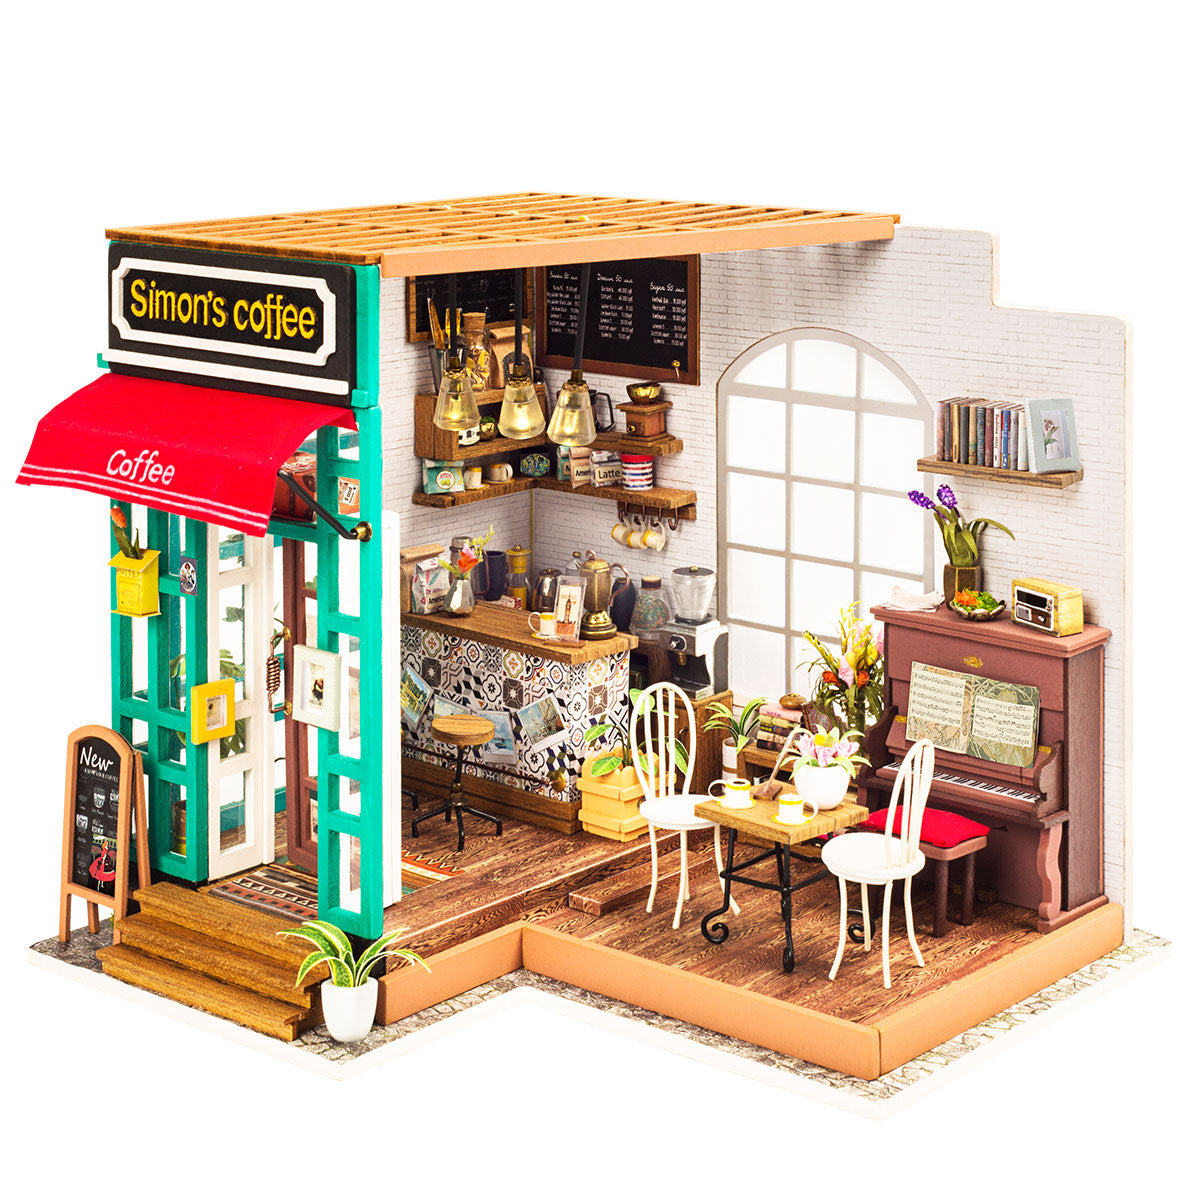 DIY Coffee House with Furnitures Miniature Wooden Model Building Kits